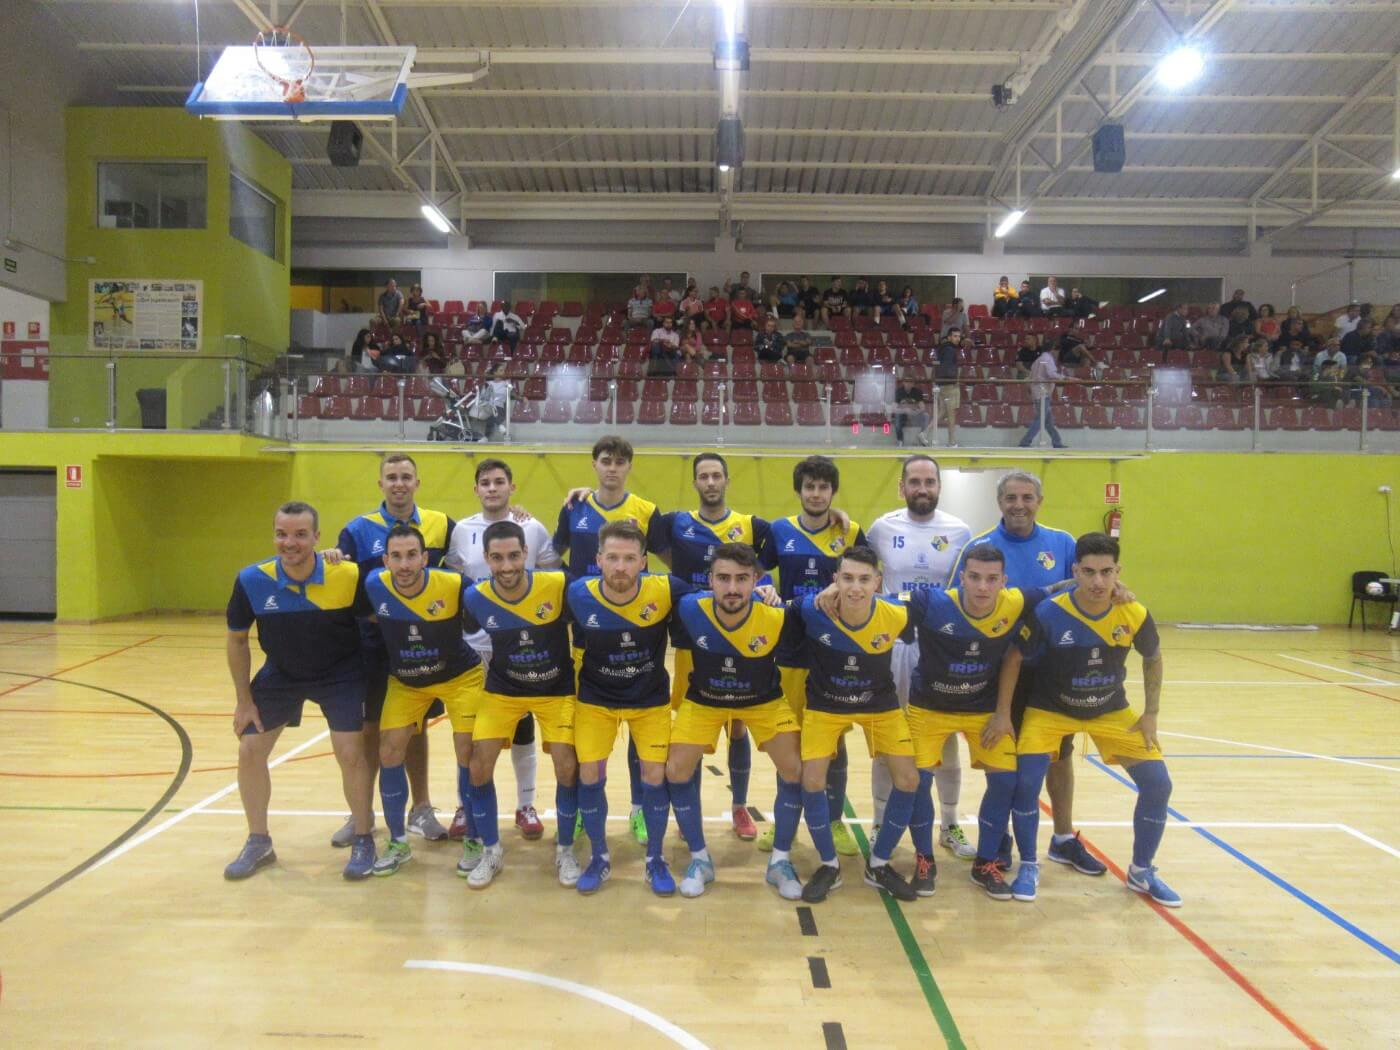 El Gran Canaria sigue imparable frente al Aguas de Teror